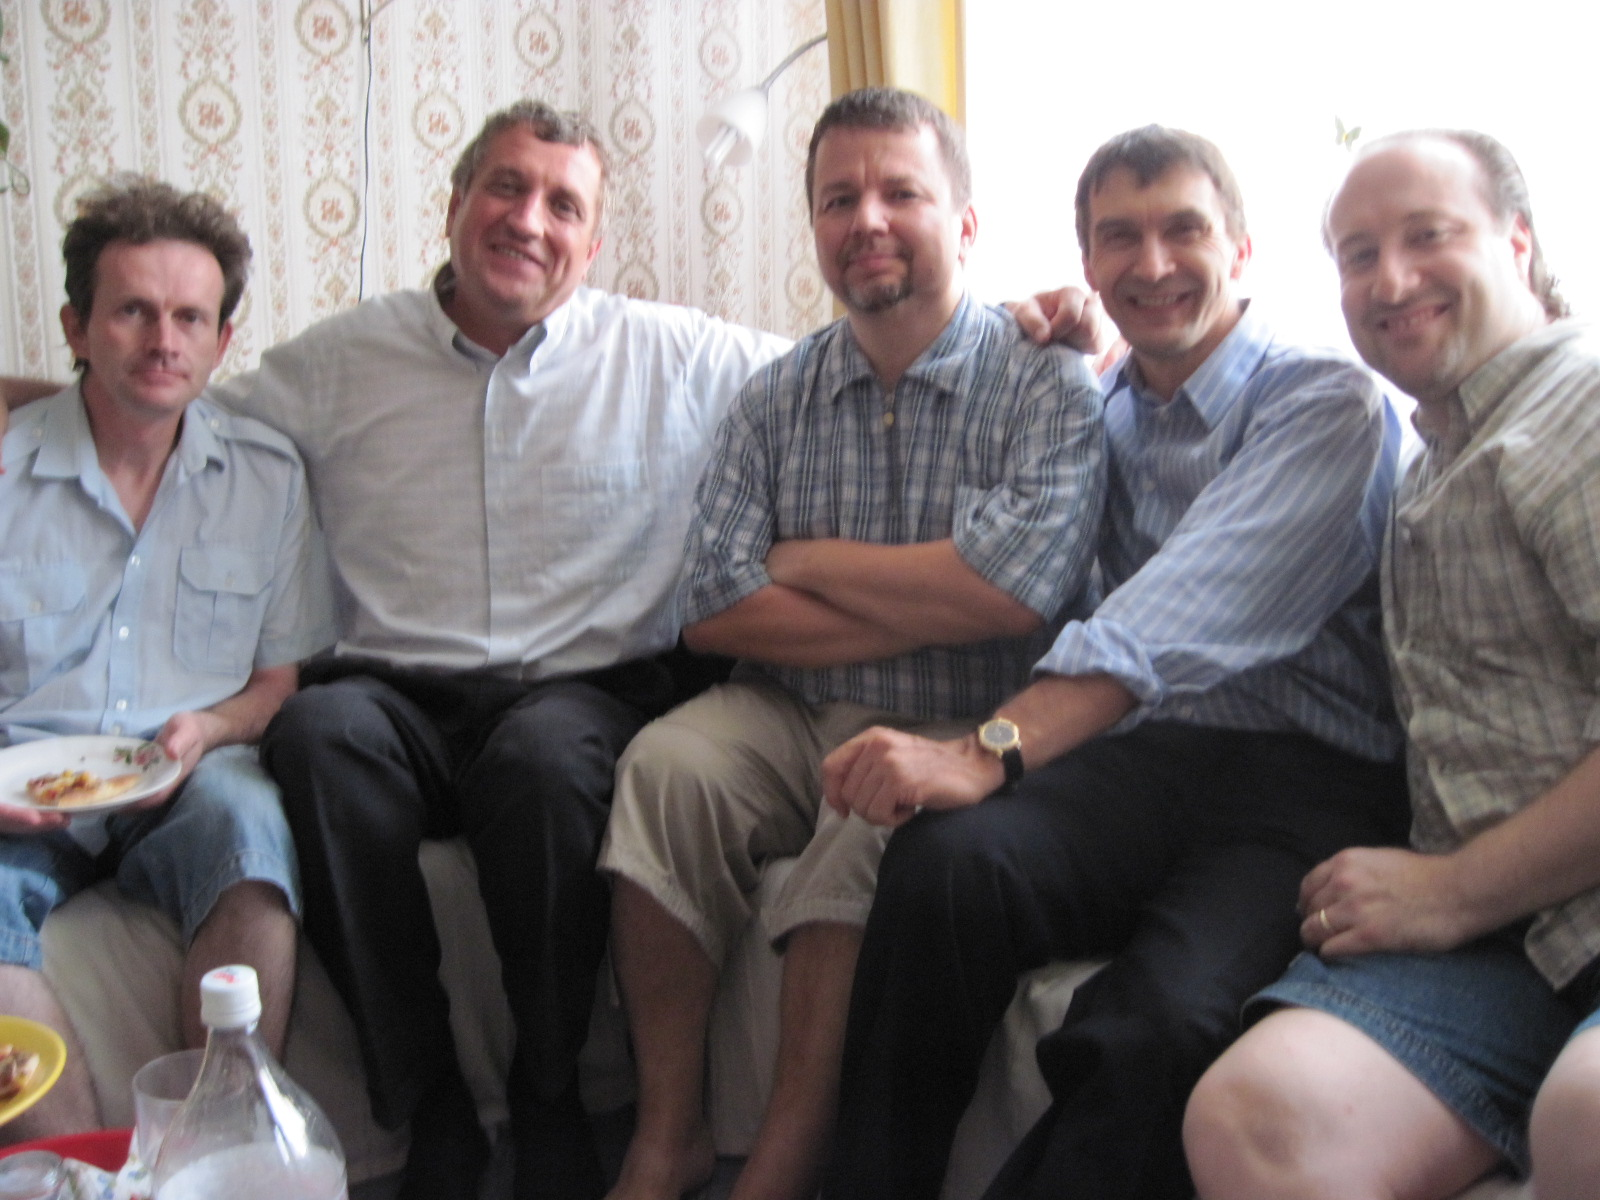 Budapest Church of Christ Men's Group encouraged me.